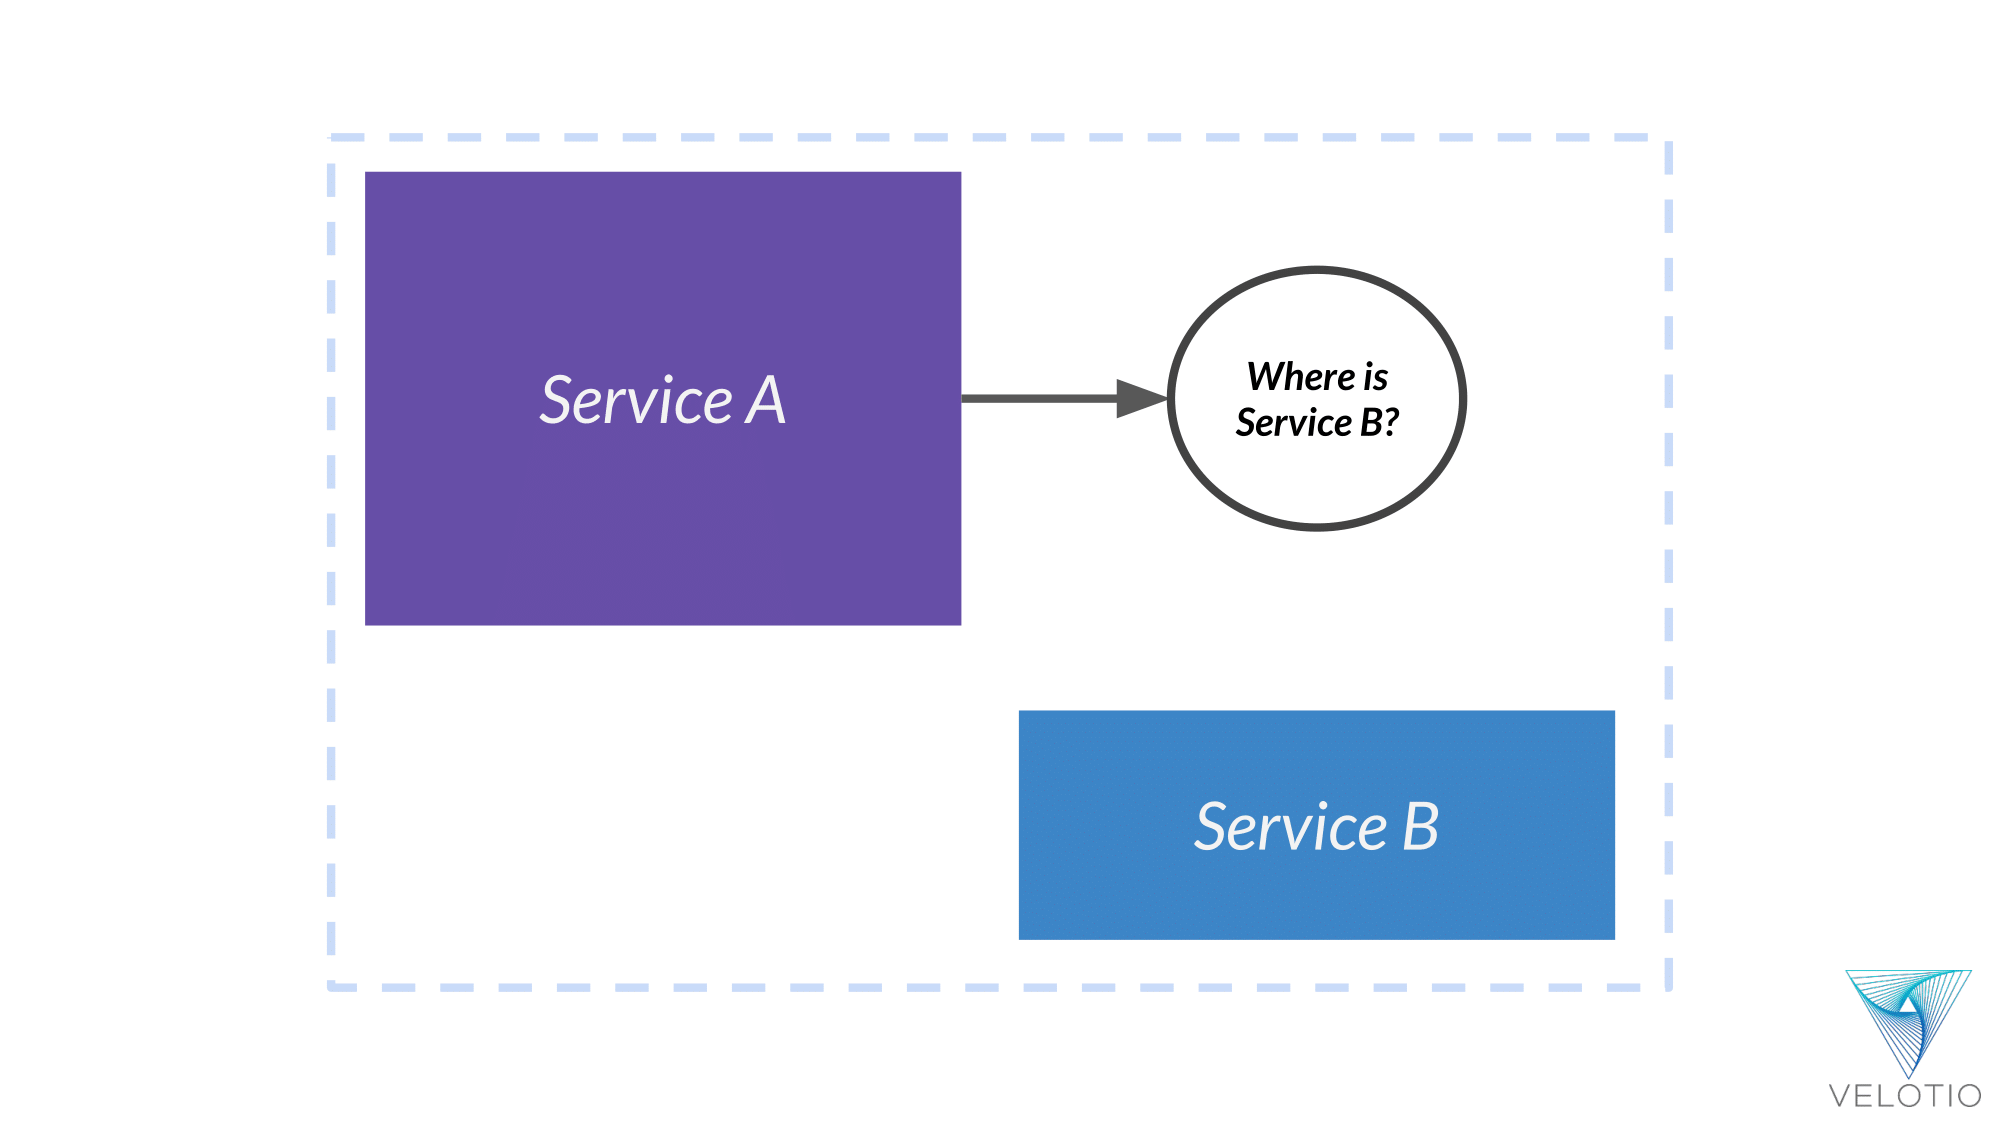 Service A tries to find Service B to establish communication